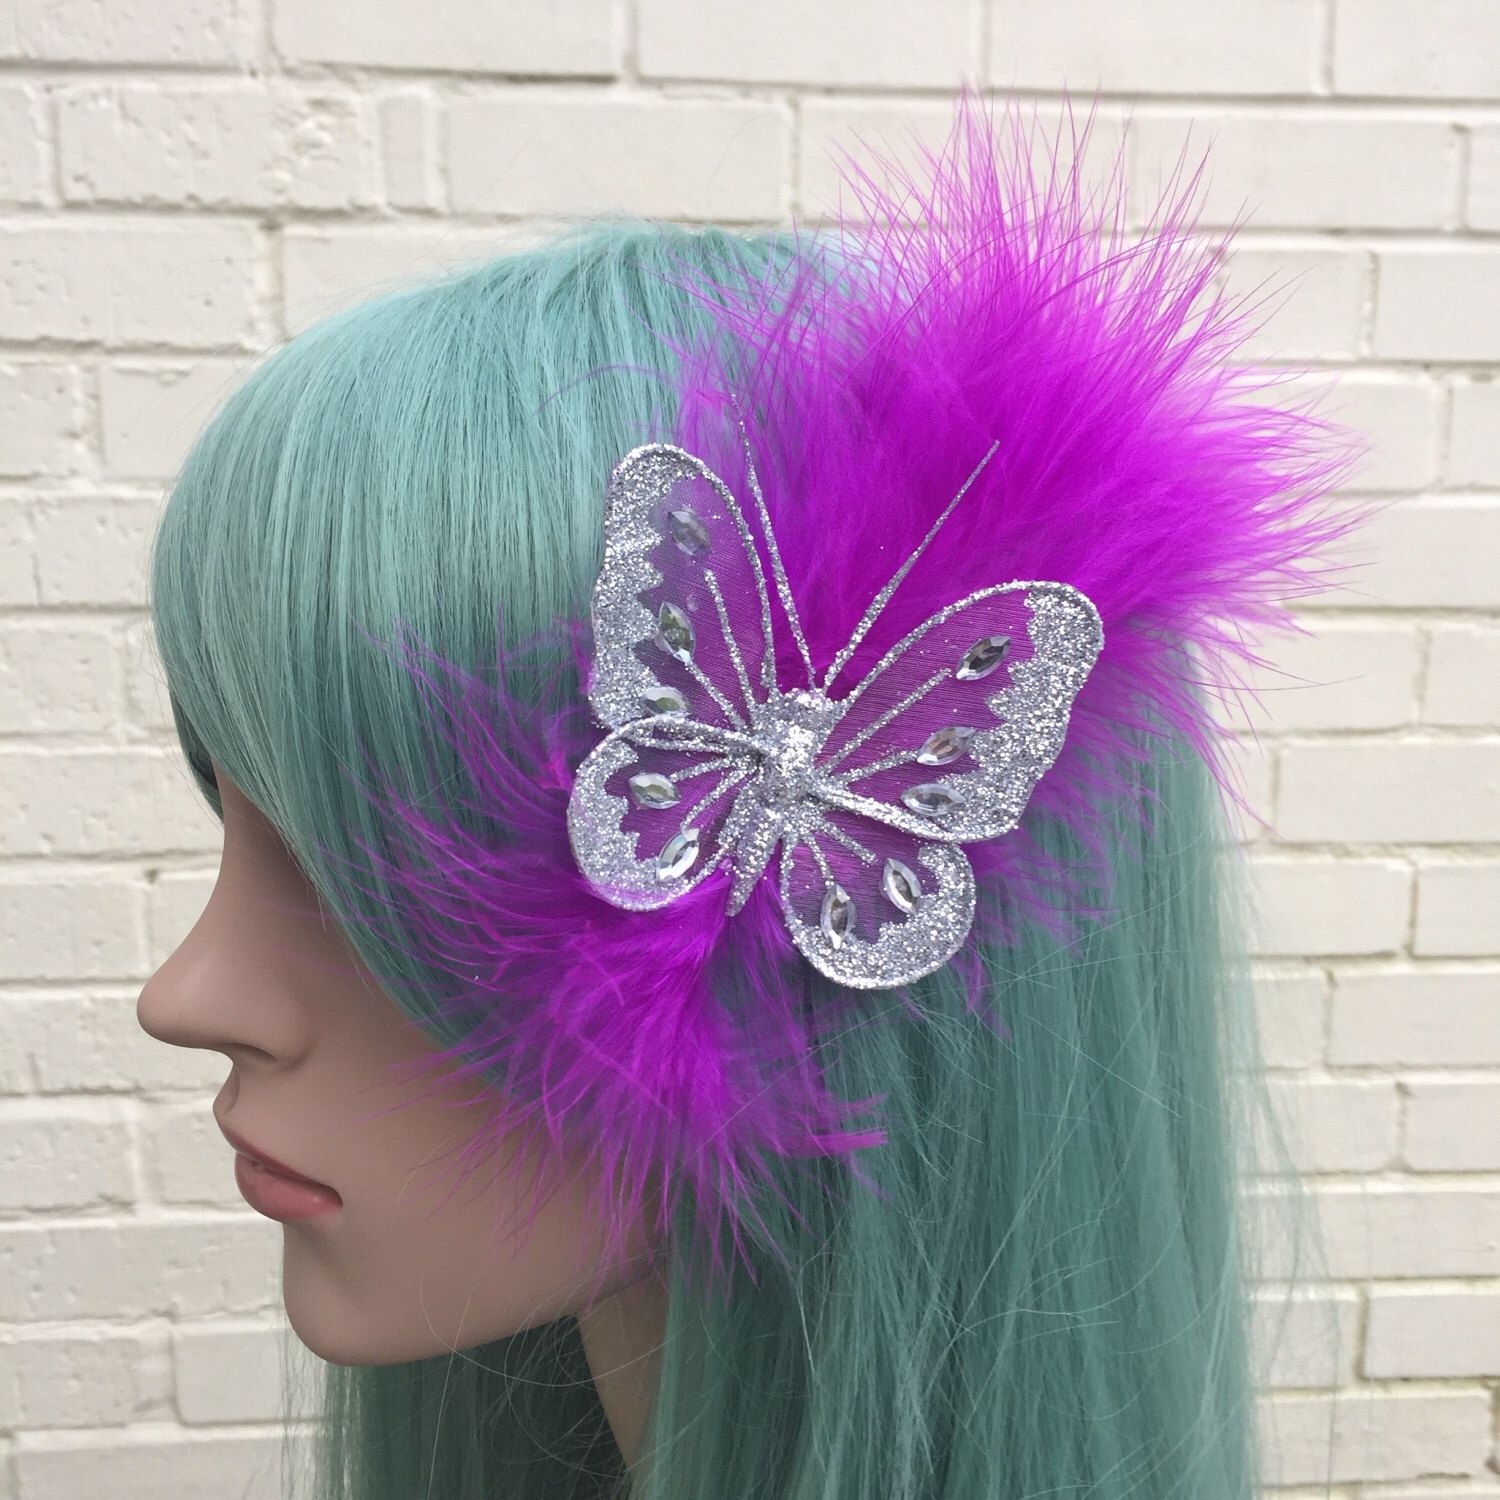 Butterfly hair accessories for weddings uk - Feather Hair Clips